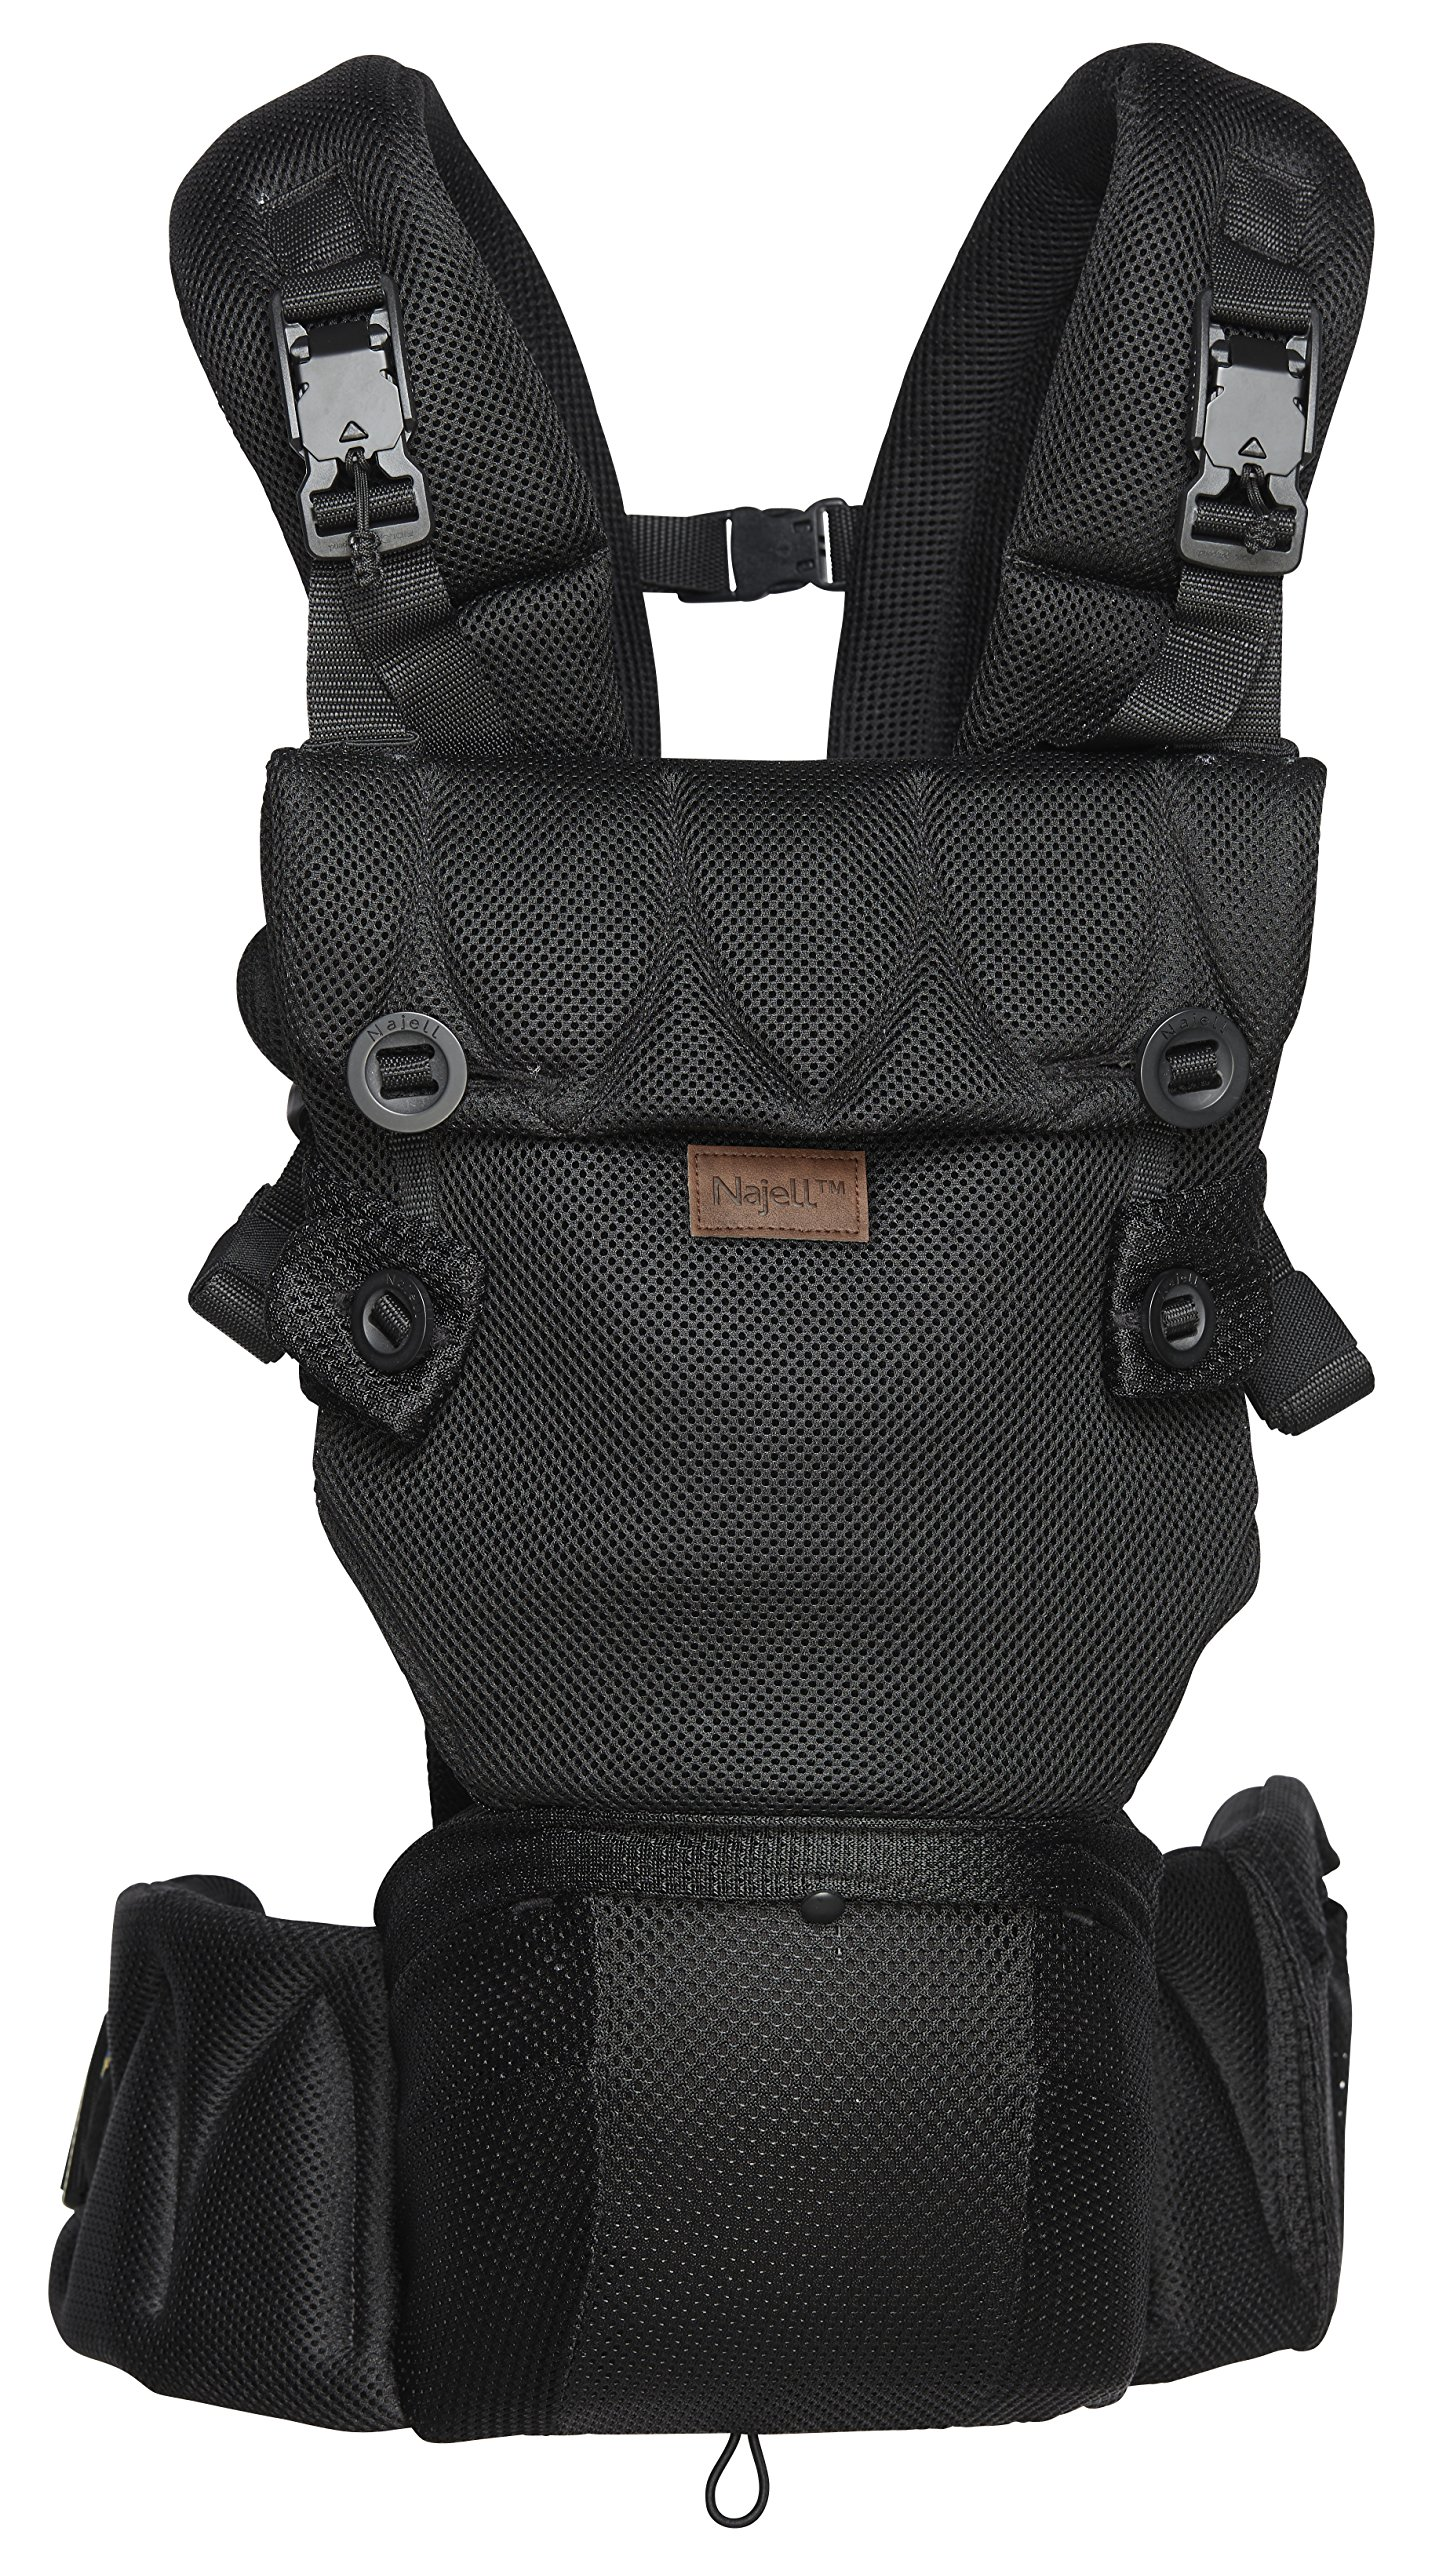 Najell Omni Active Mesh Baby Carrier with Hip Seat, Brilliant Black Béaba New-born ergonomic position and hips seat from 6 months. Market leading weight distribution with hip seat, recommended by the international hip dysplasia institute as a hip-healthy baby carrier Weight: 3, 5 to 15 kg and age: new-born to 3 years. 1